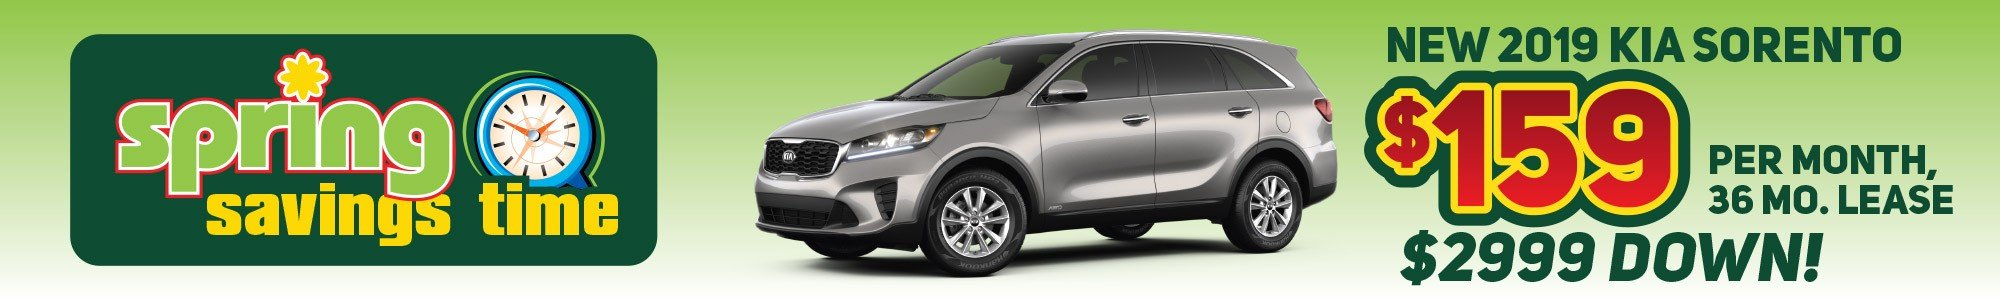 Kia Sorento on sale at Sansone Jr's 66 Kia in Neptune NJ